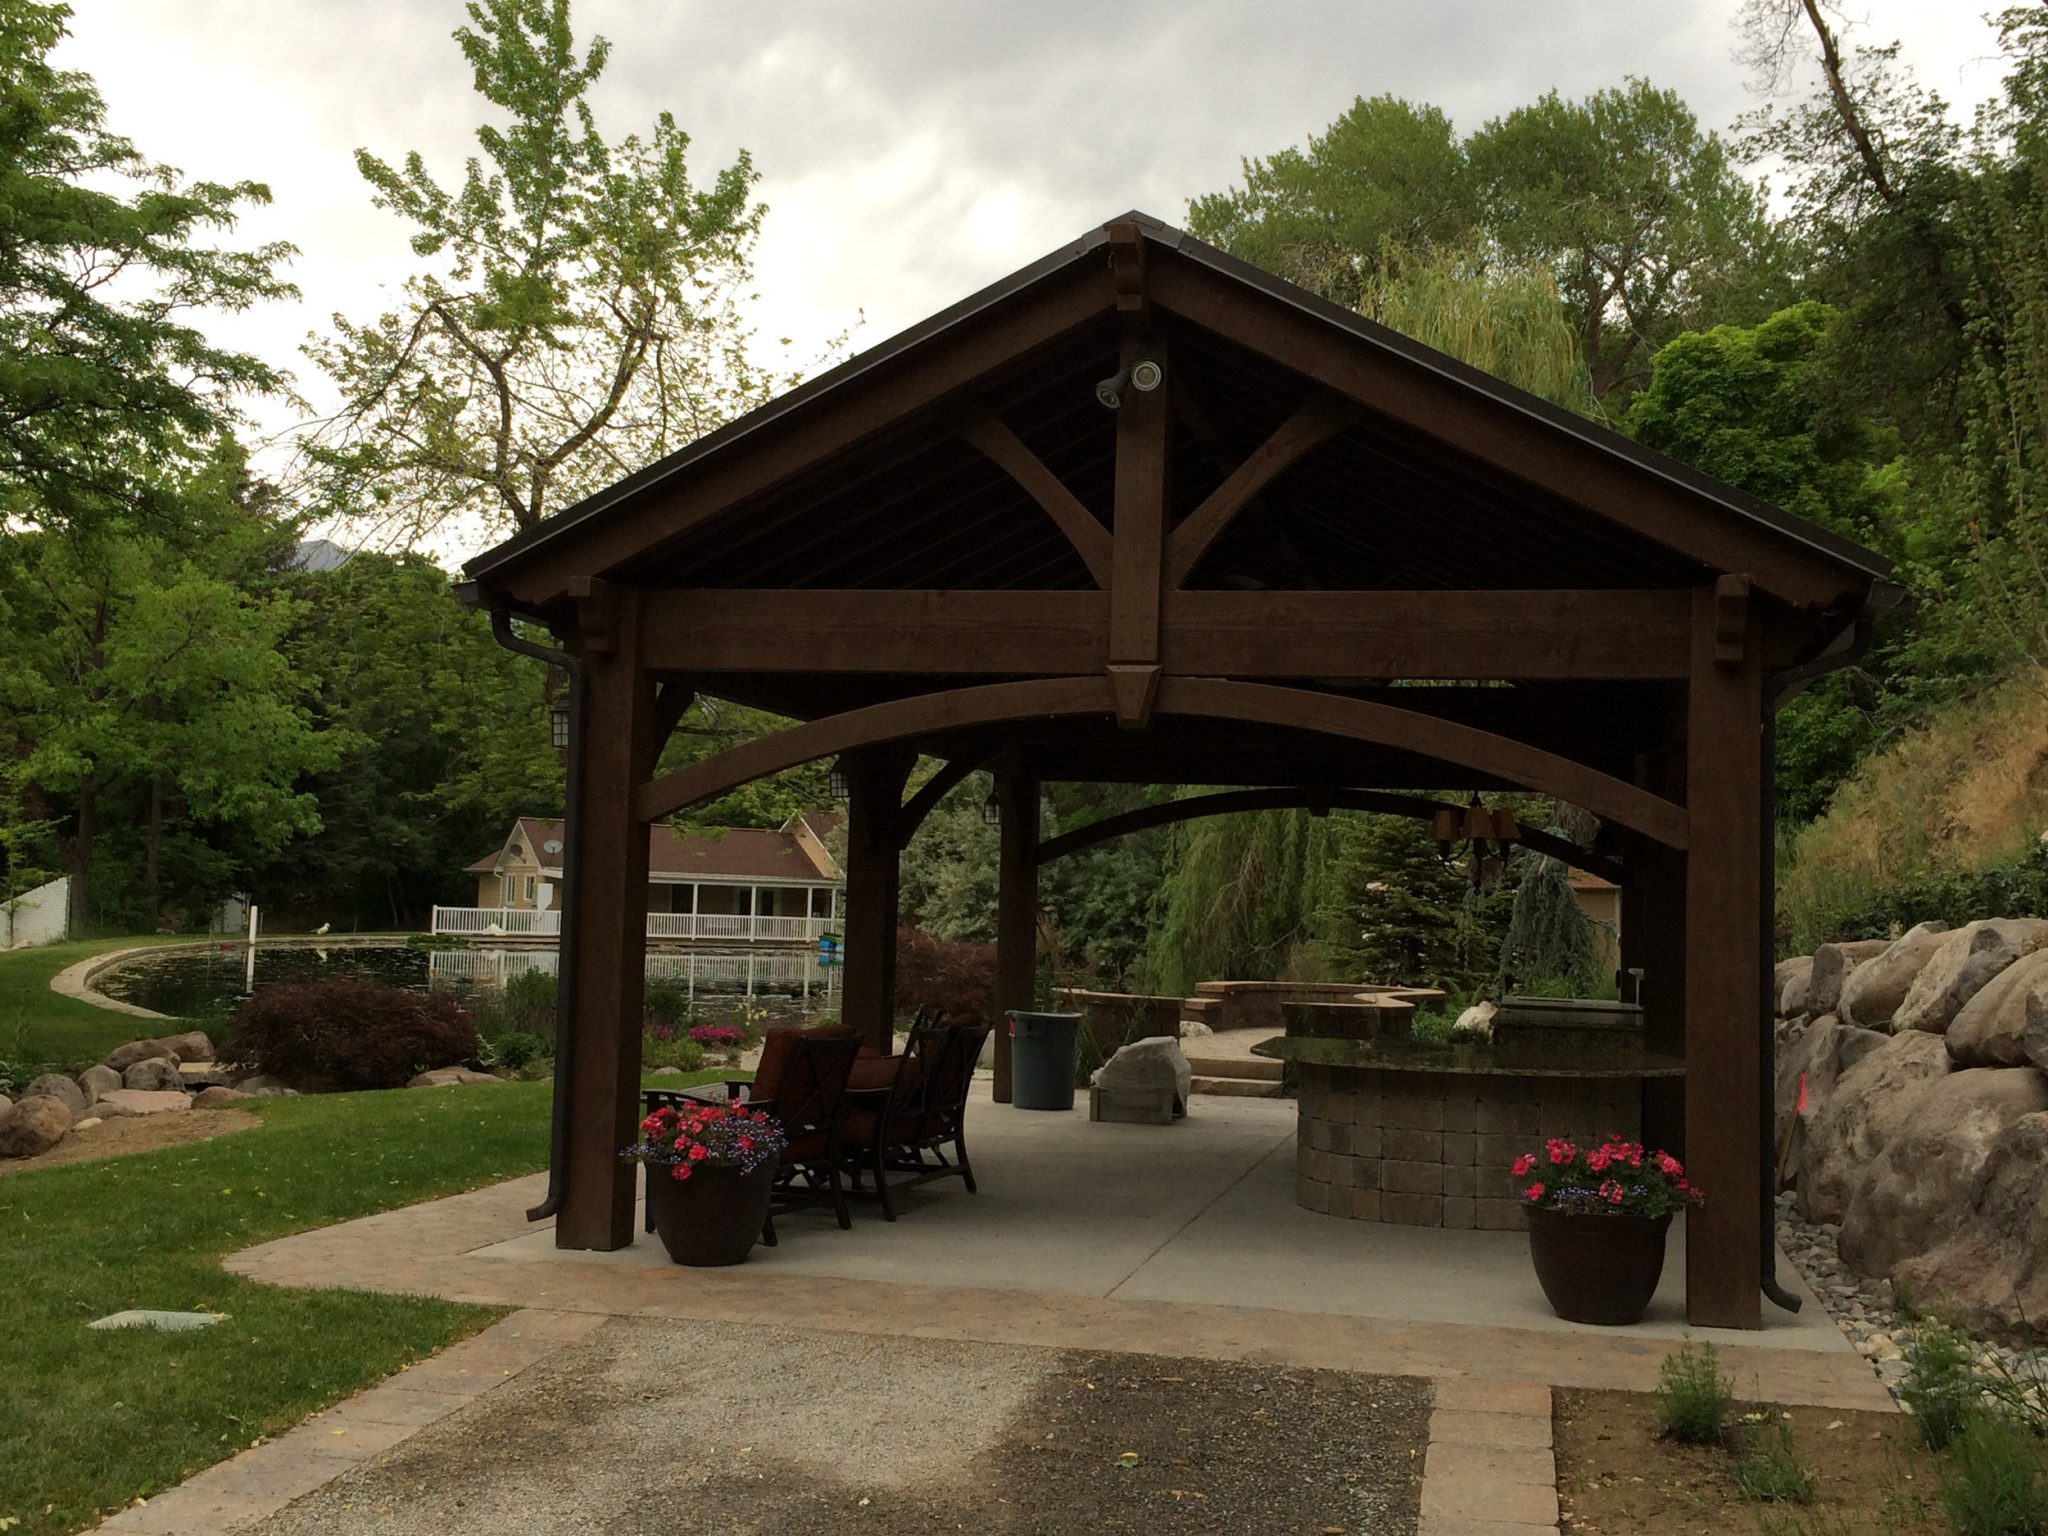 Backyard Escape with DIY Timber Frame Pergola or Pavilion Kit